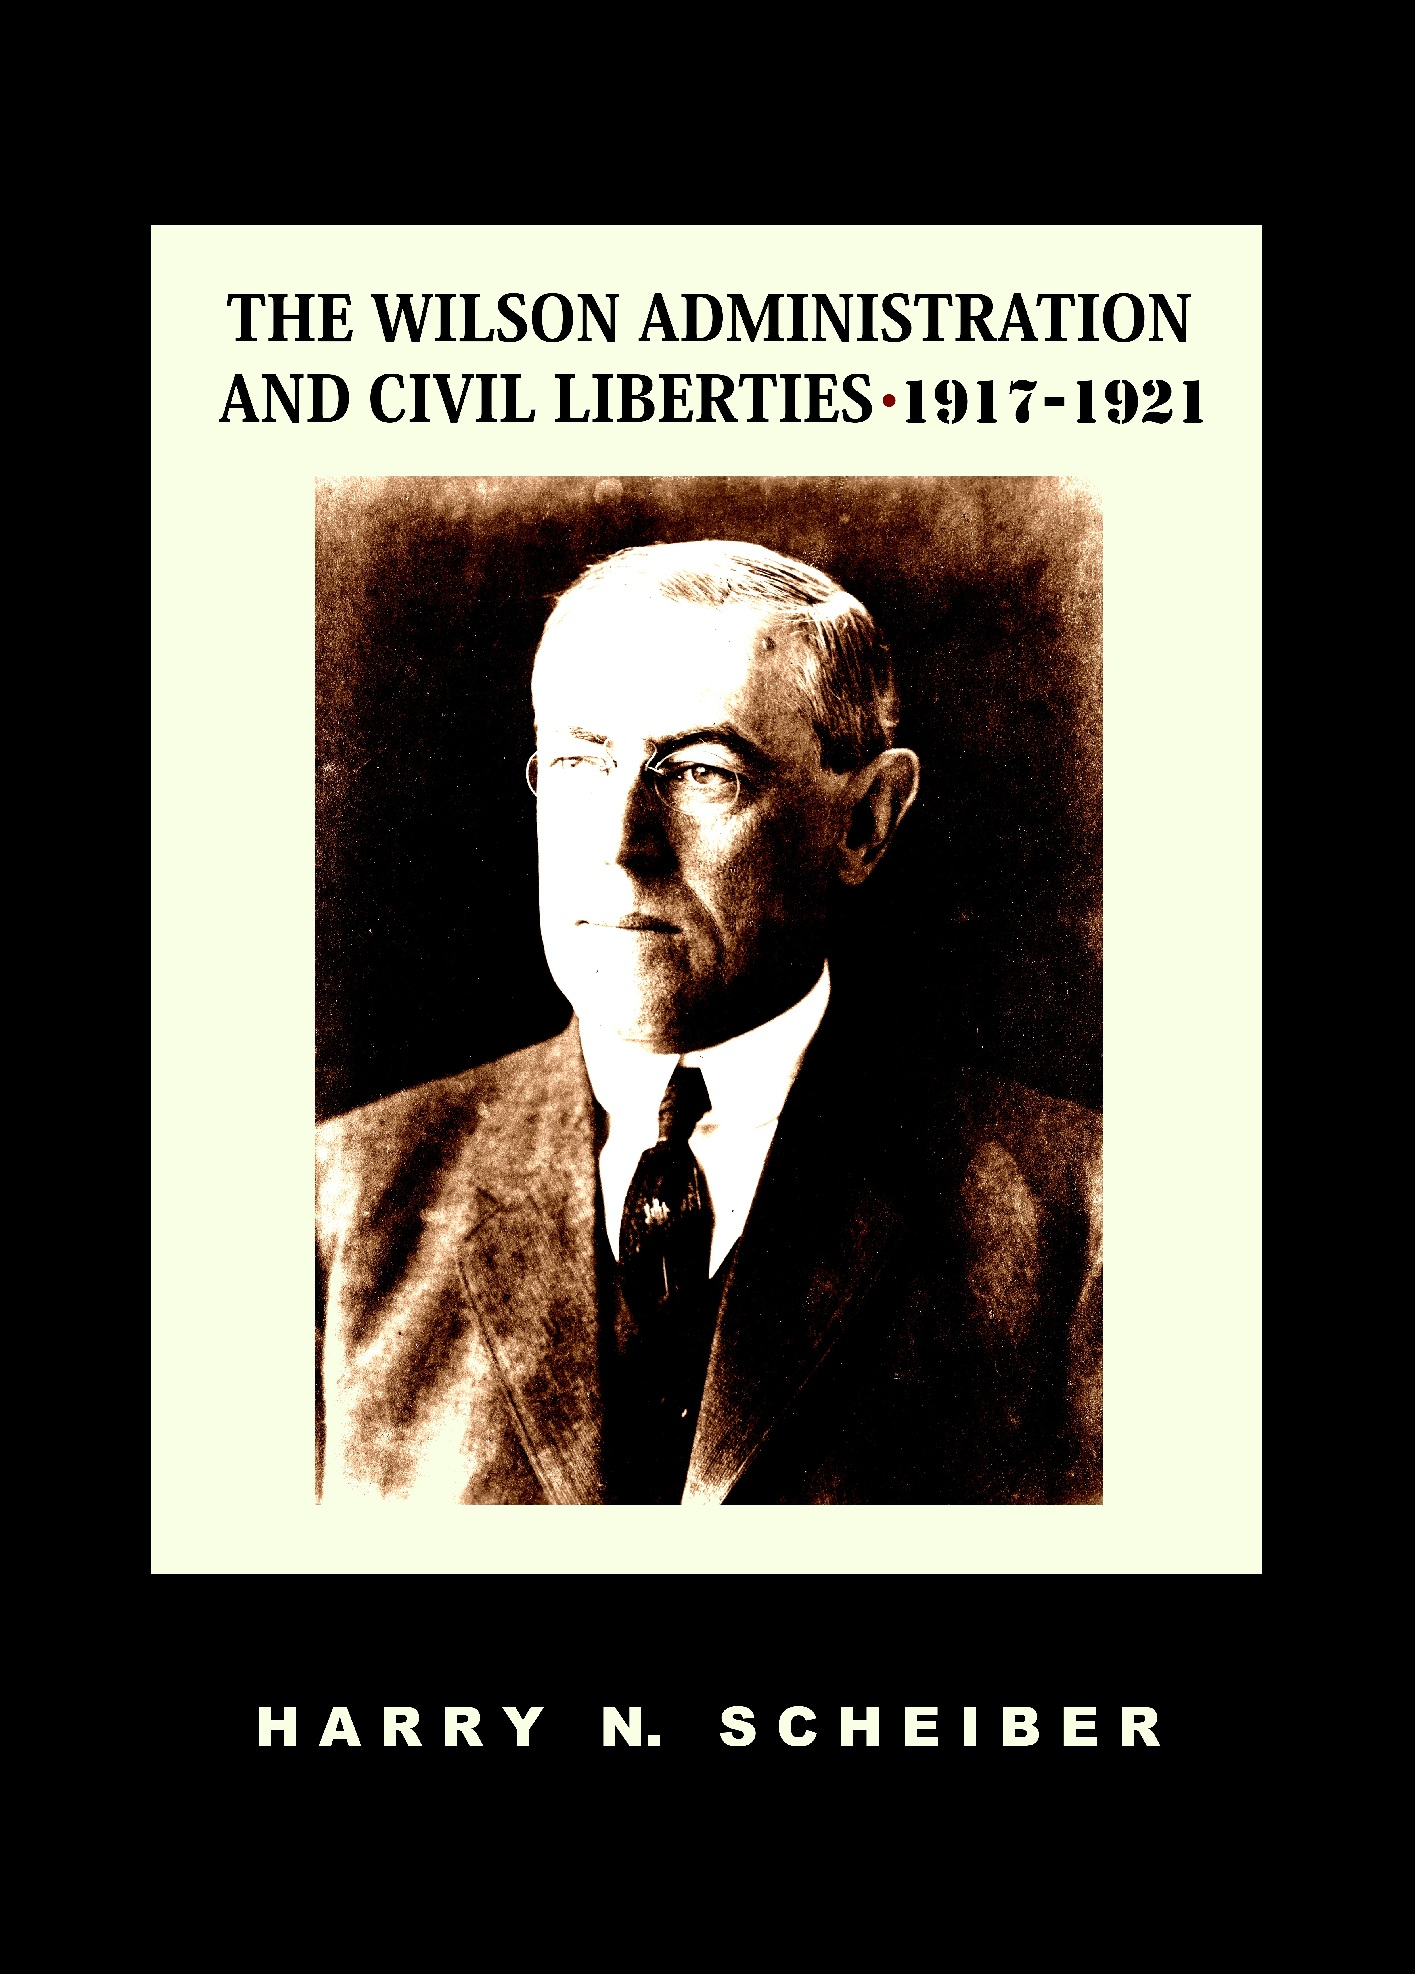 an analysis of the actions by woodrow wilson and his involvement in world war one Woodrow wilson said on the eve of his inauguration that his primary affairs2 fate would have it that president wilson would lead the united states through the greatest war the world had ever seen although wilson had limited leadership experience first world war: american ideals.